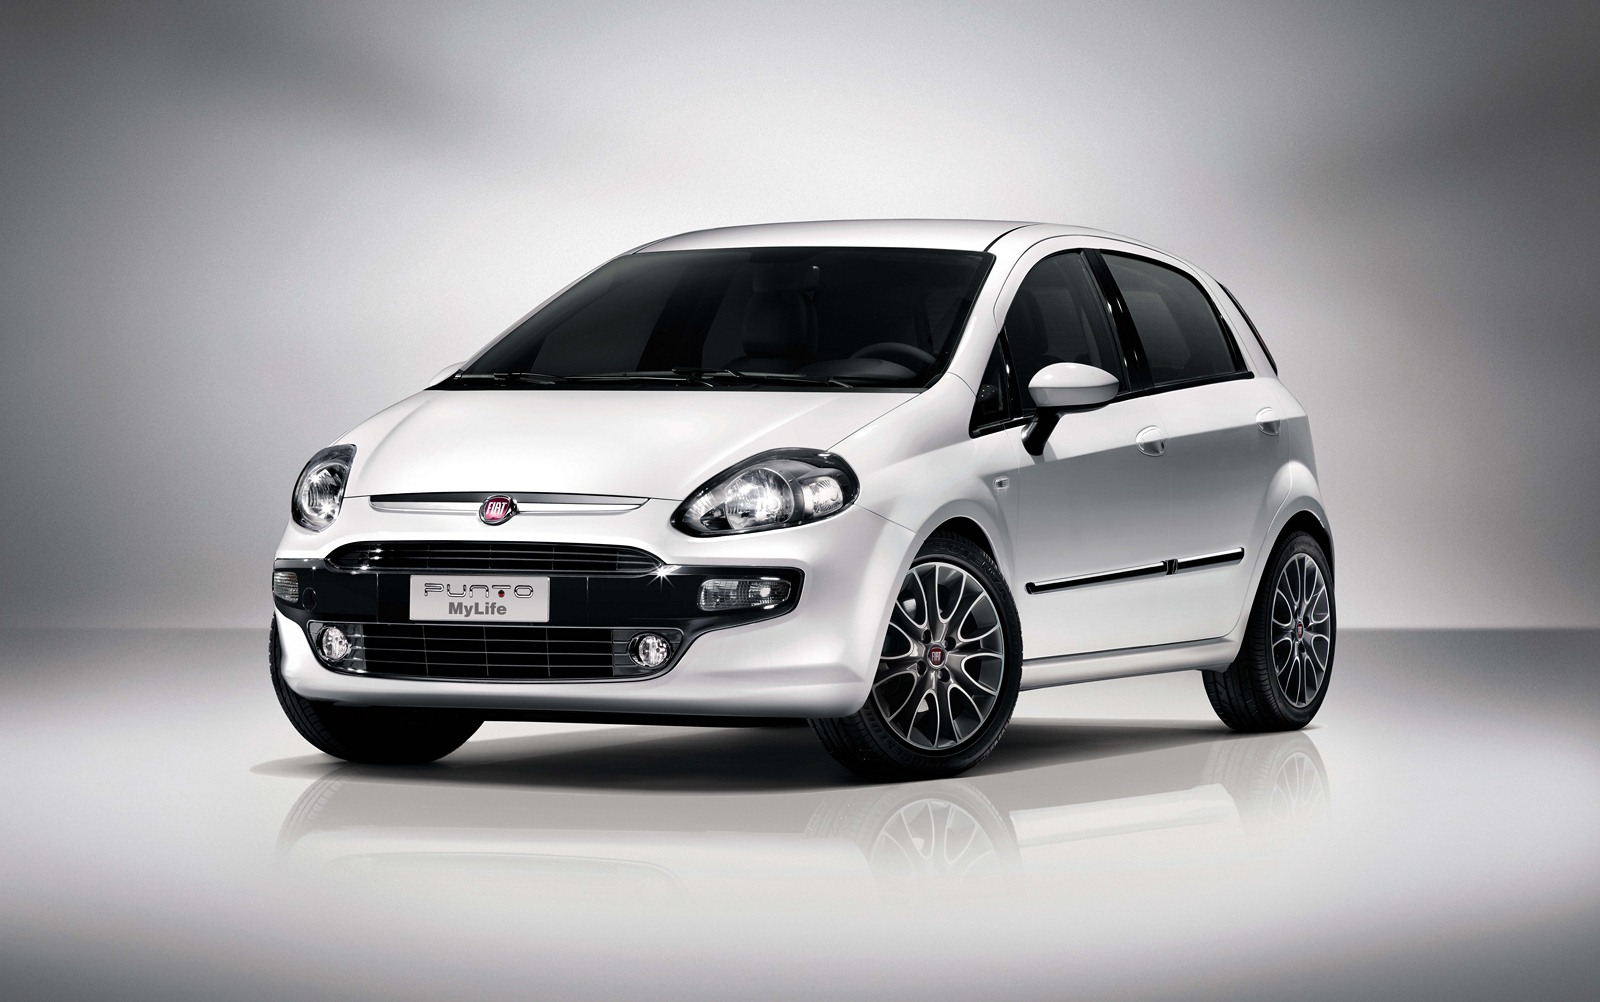 new 2012 fiat punto evo my life photos and details garage car. Black Bedroom Furniture Sets. Home Design Ideas